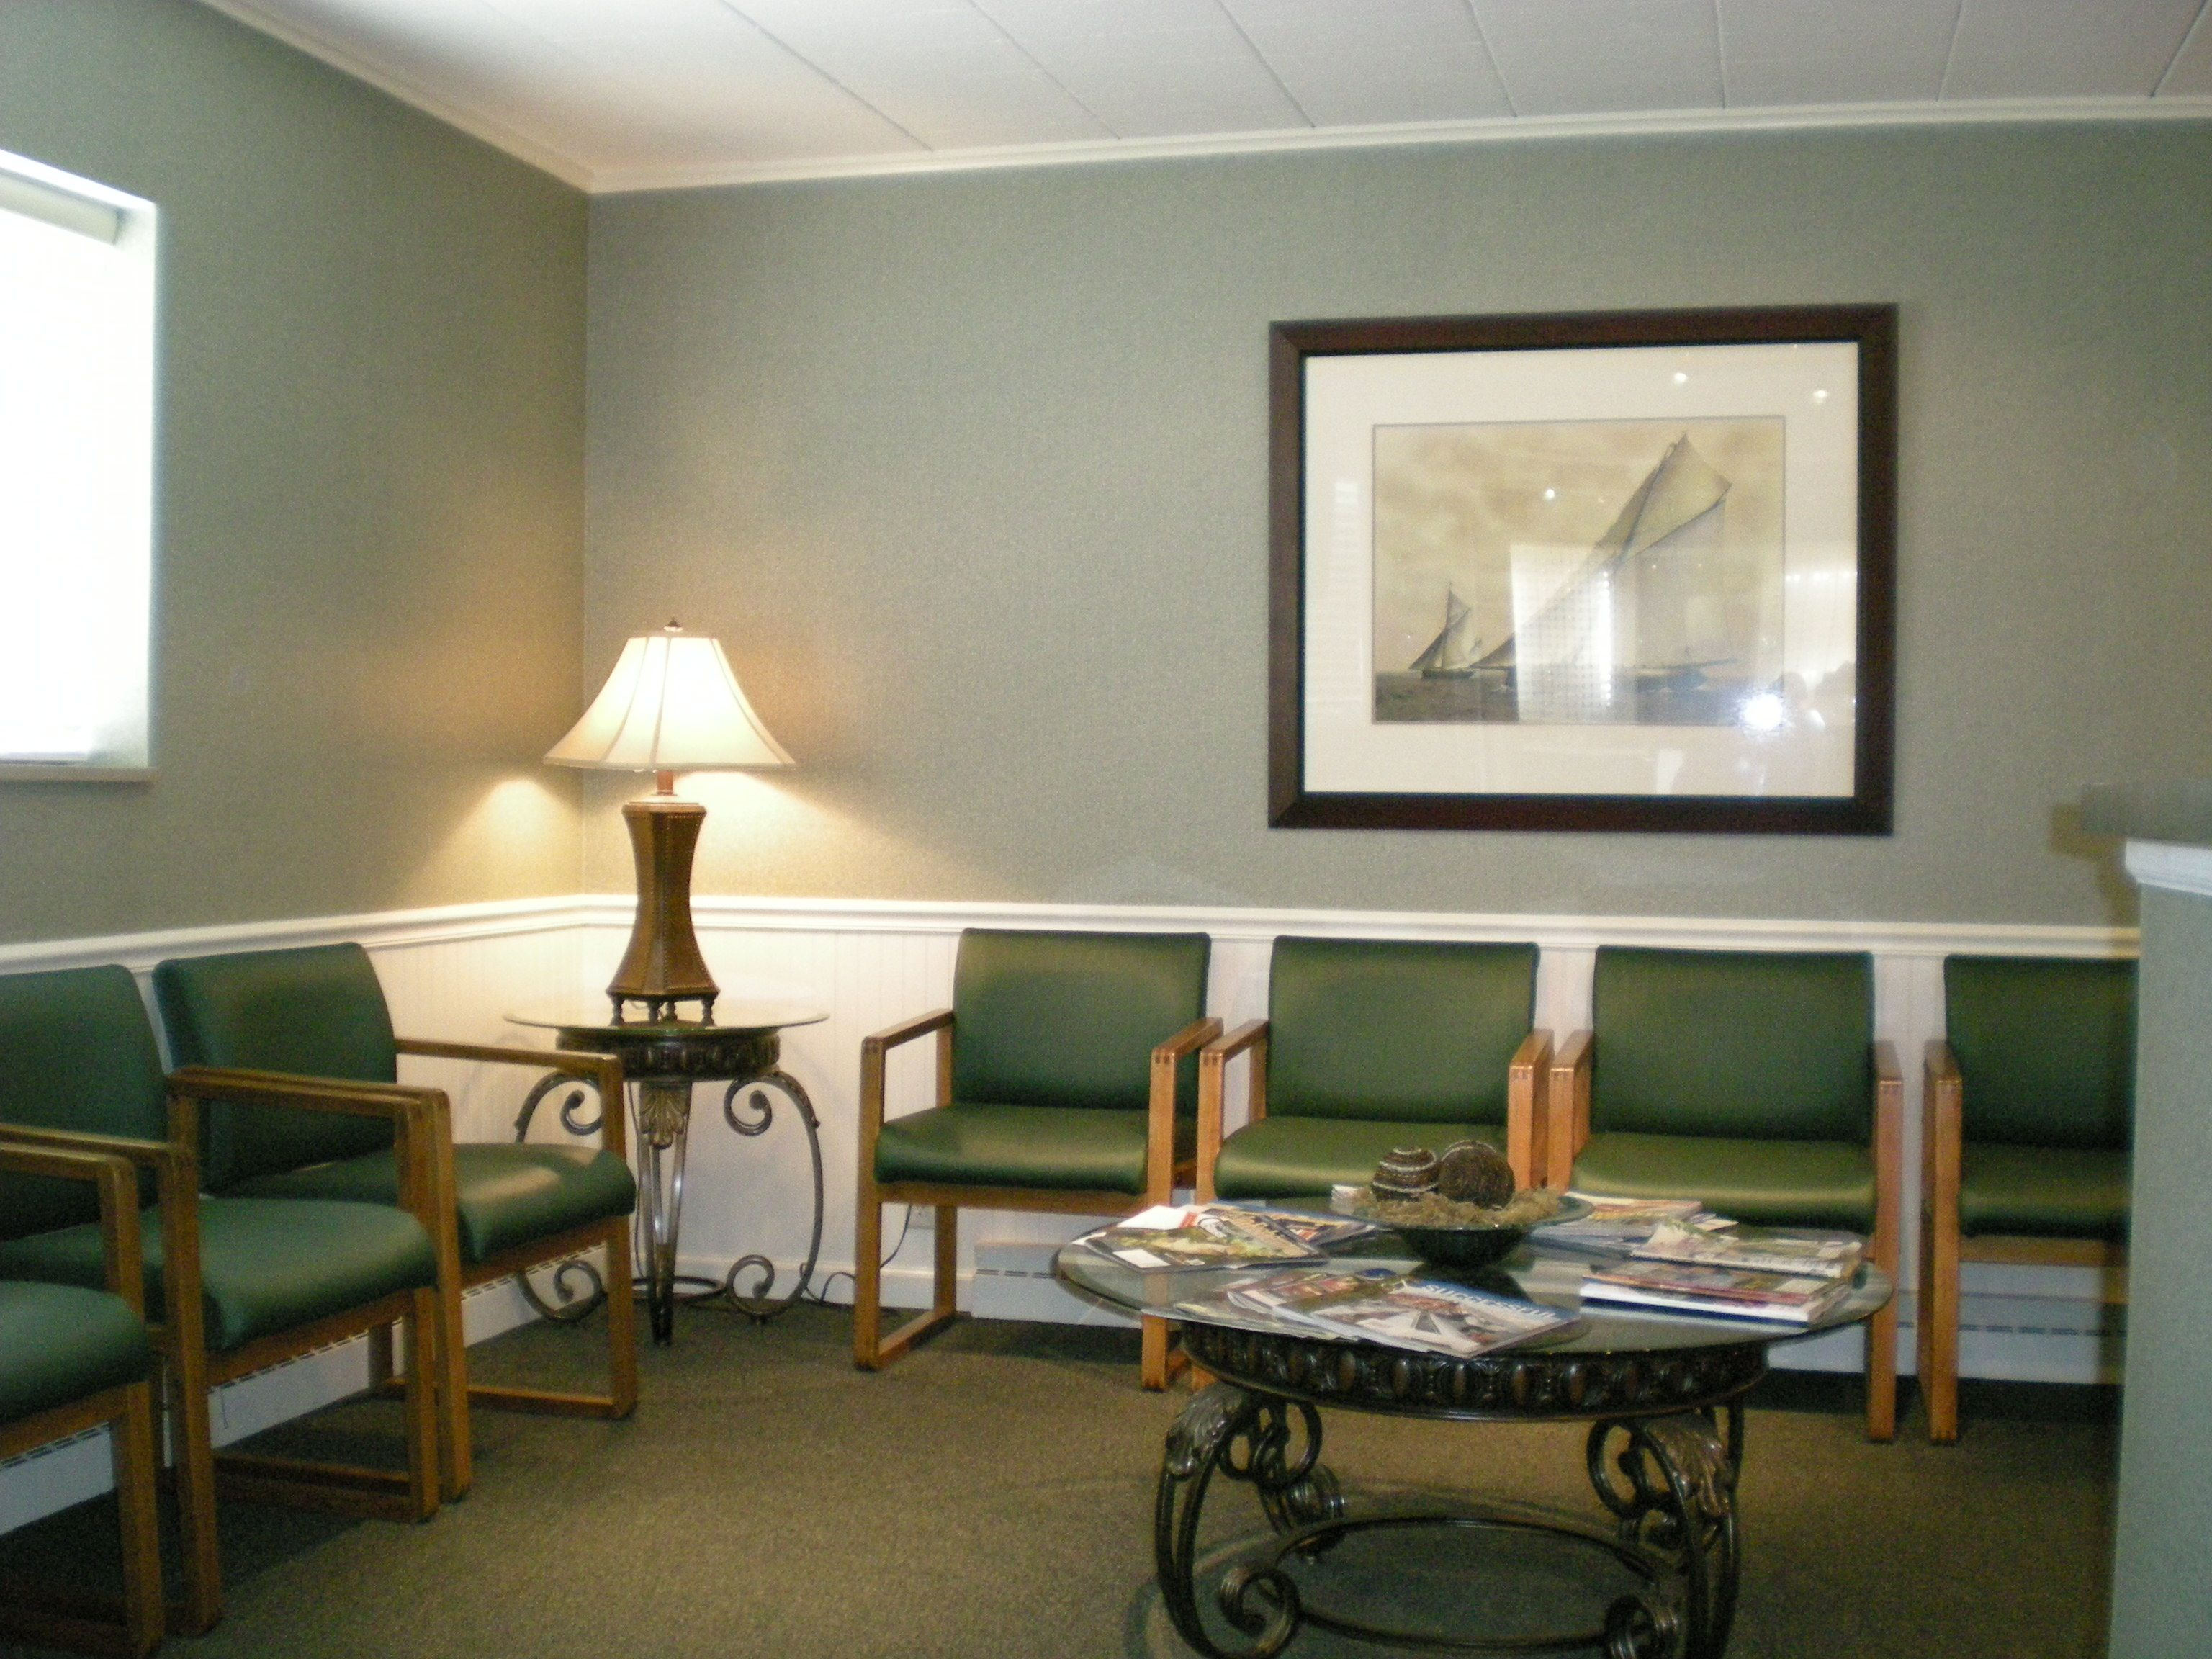 Waiting Room interior design with green chairs  Ideas for